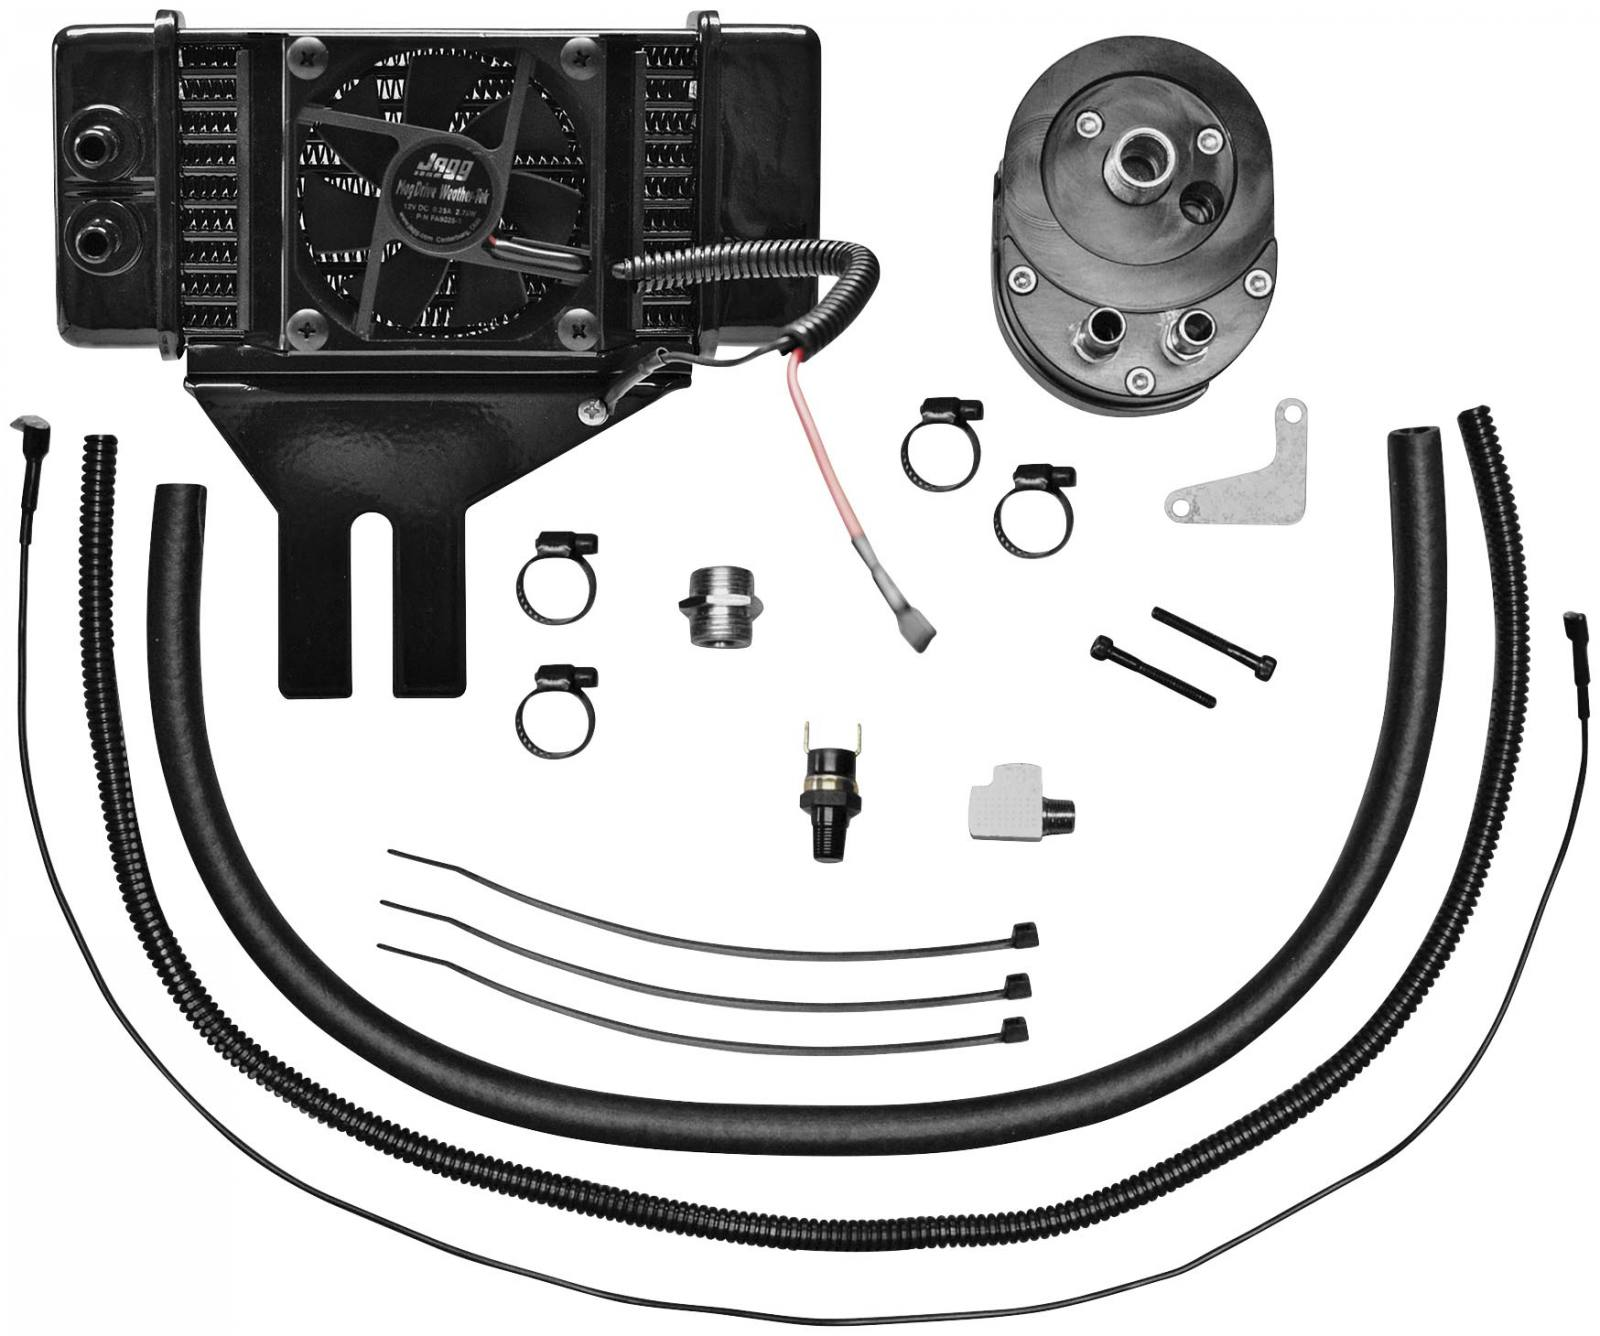 Horizontal Low Mount 10 Row Fan Assisted Oil Cooler Kit For Sale In Wiring Diagram Bmw S1000rr Ducati Multistrada 1200 Toronto On Maranello Moto Sport 416 238 7898